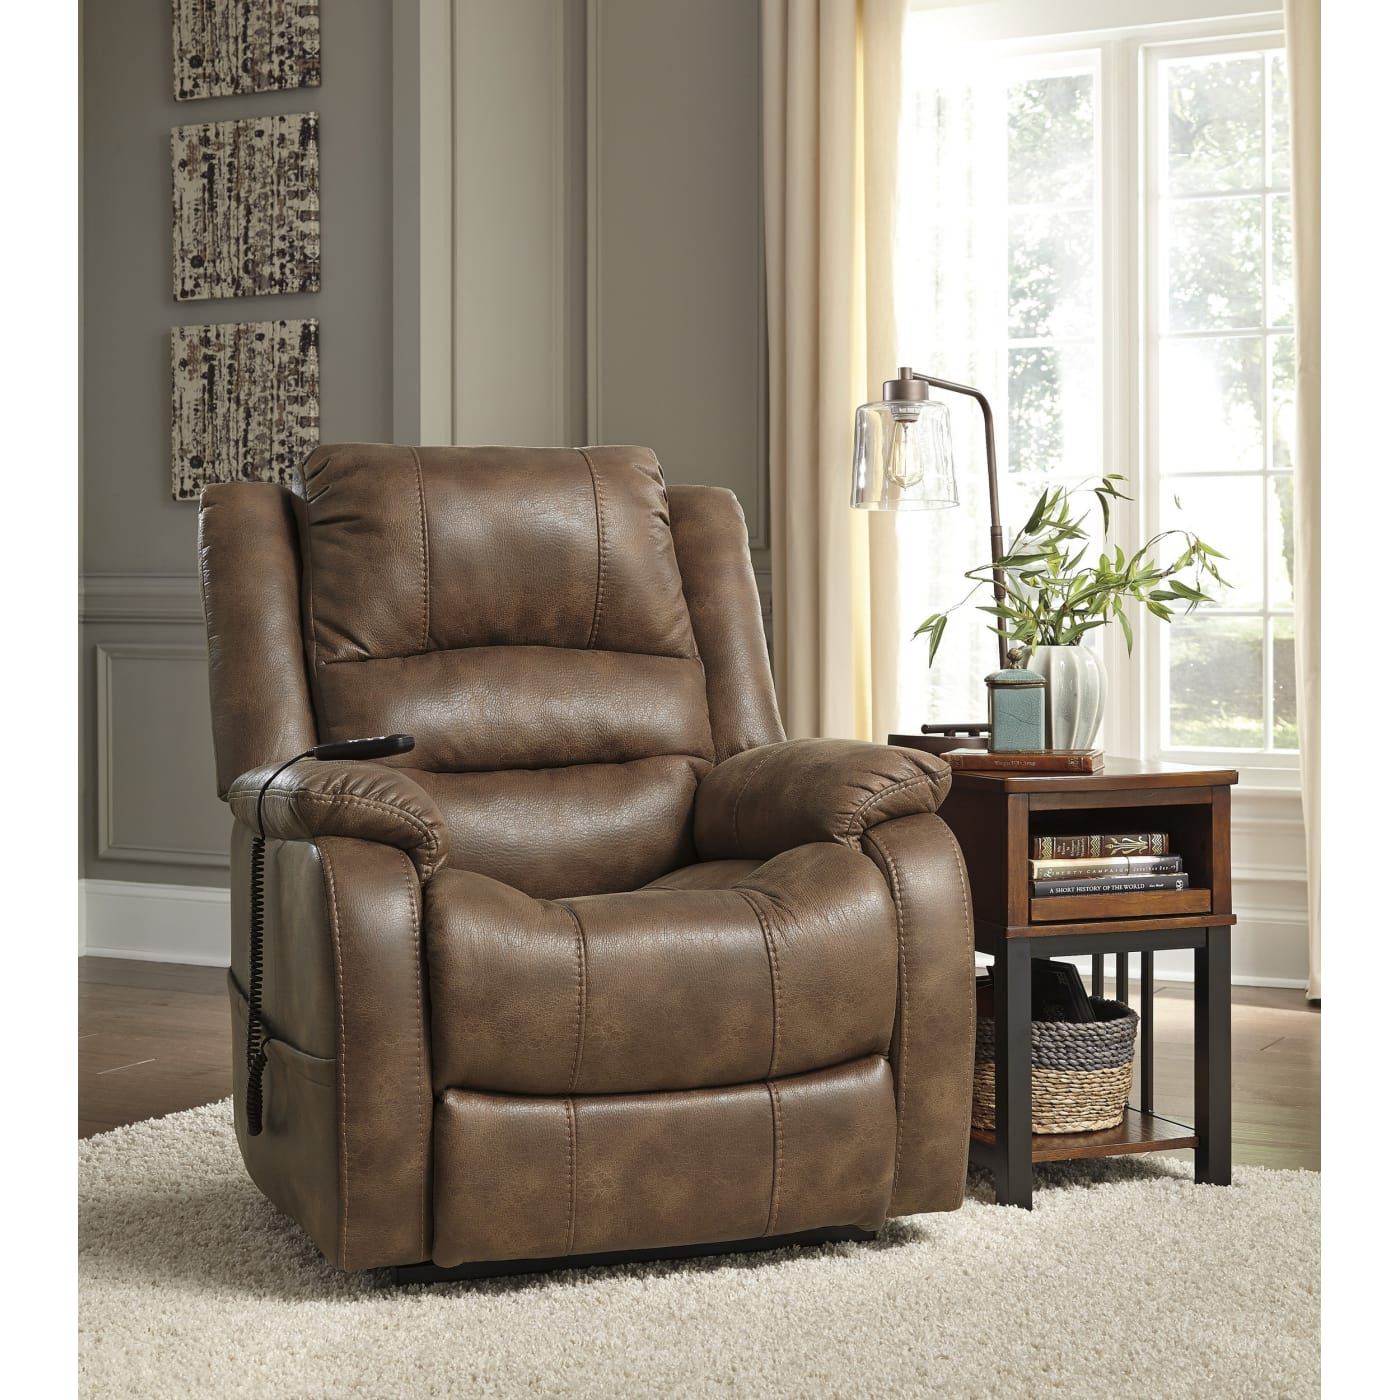 Ashley Furniture Discount Store: Signature Design By Ashley Yandel Saddle Power Lift